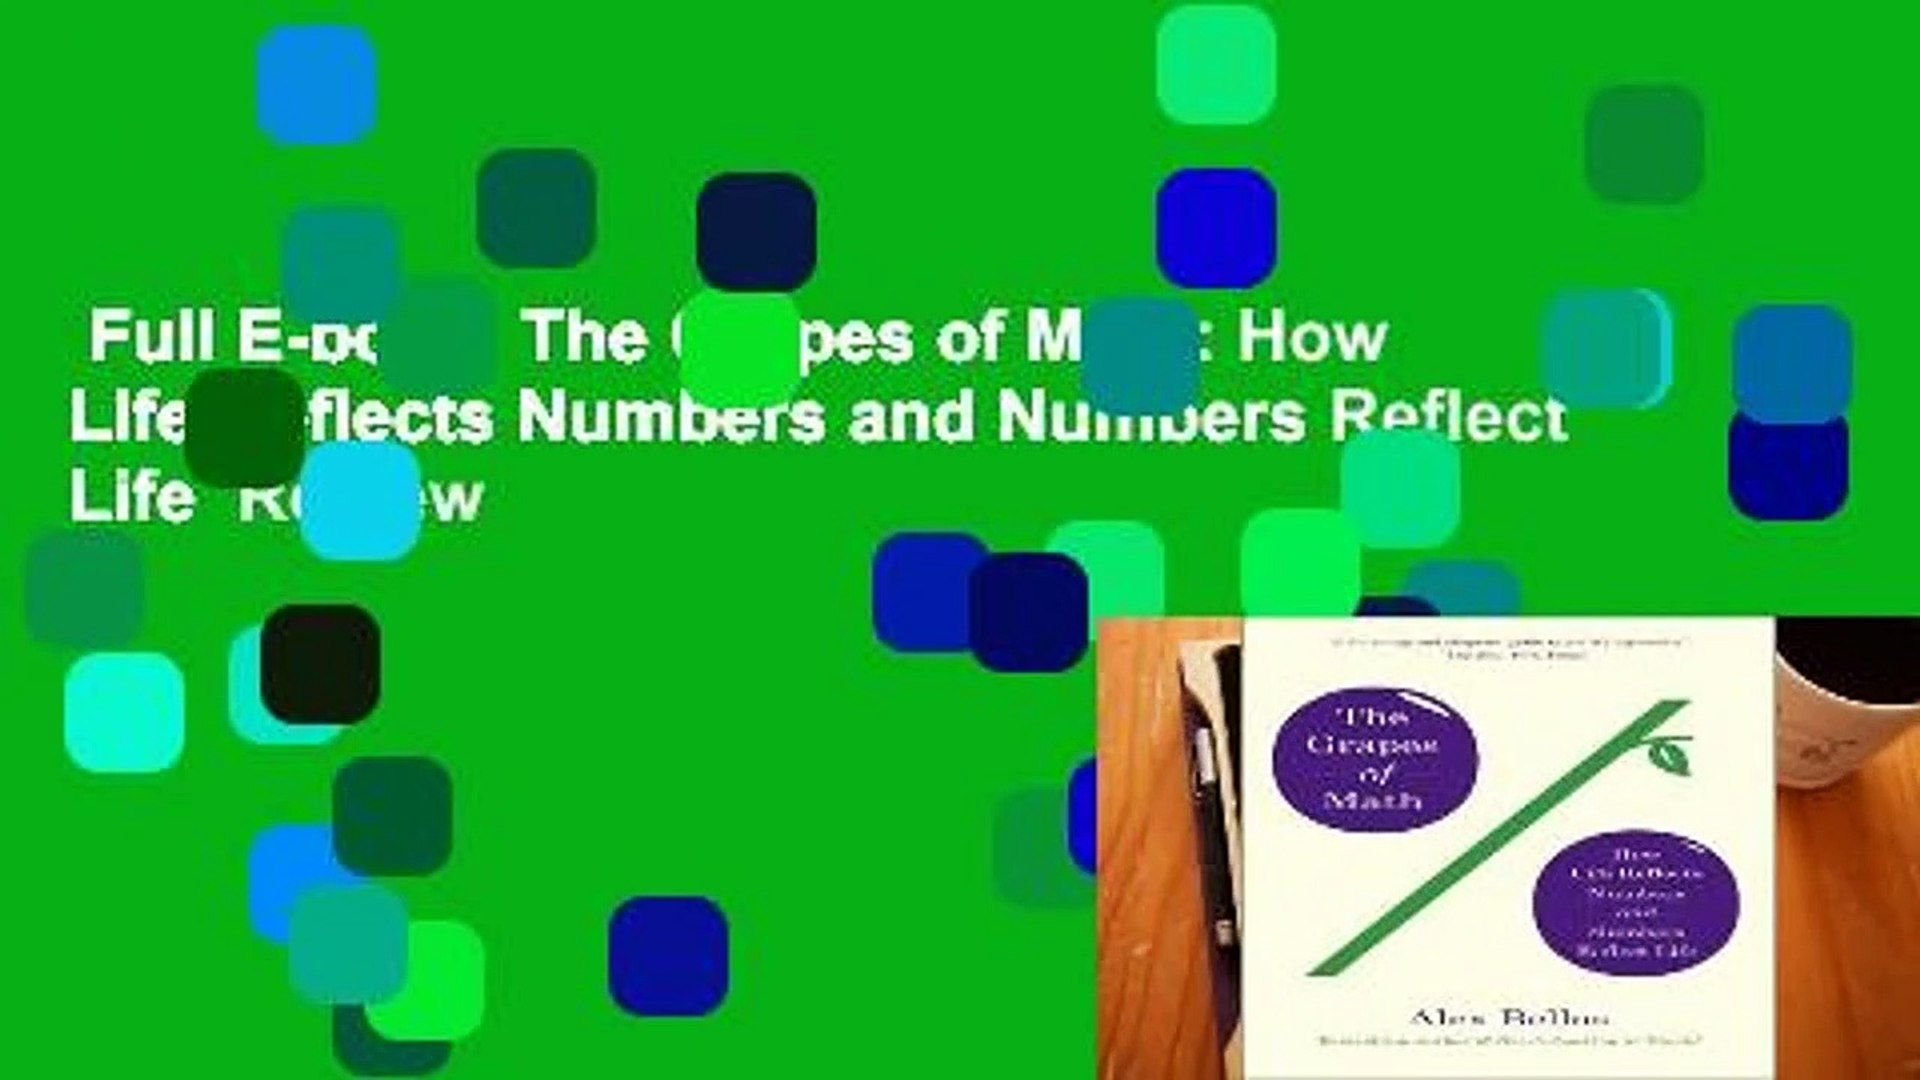 Full E-book  The Grapes of Math: How Life Reflects Numbers and Numbers Reflect Life  Review